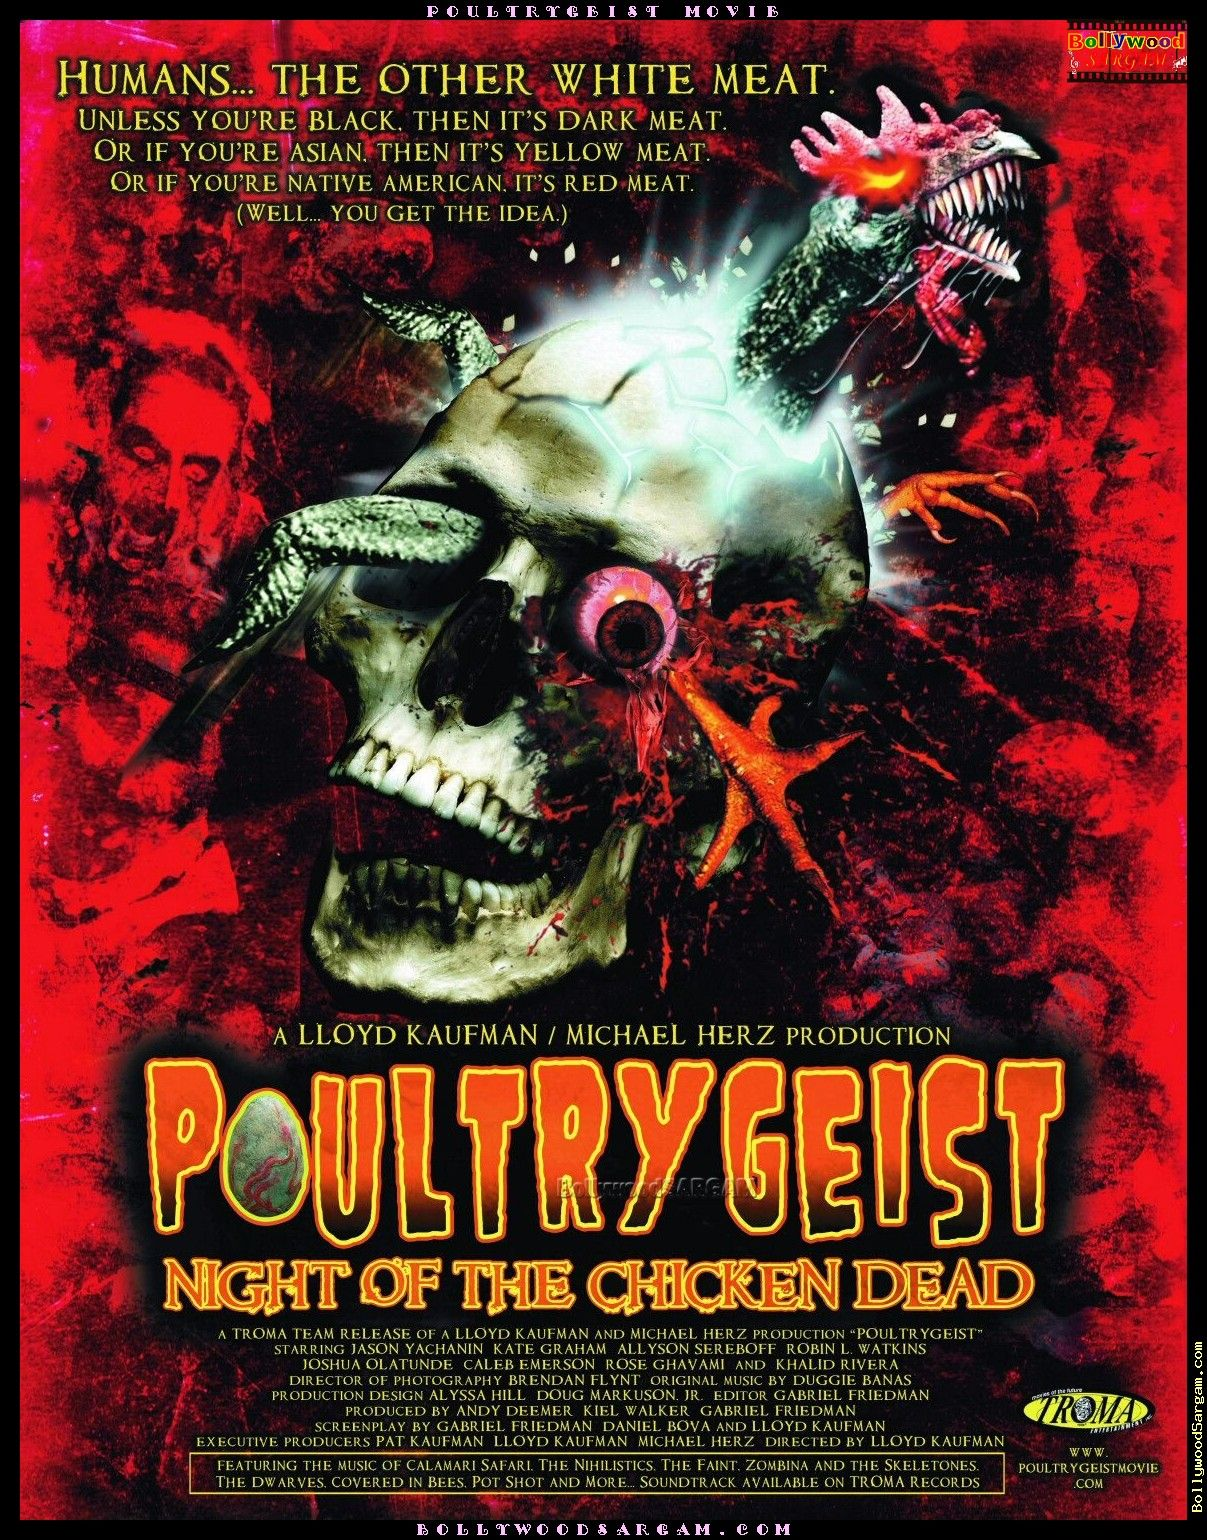 Poultrygeist_Movie_BollywoodSargam_laughing_312667